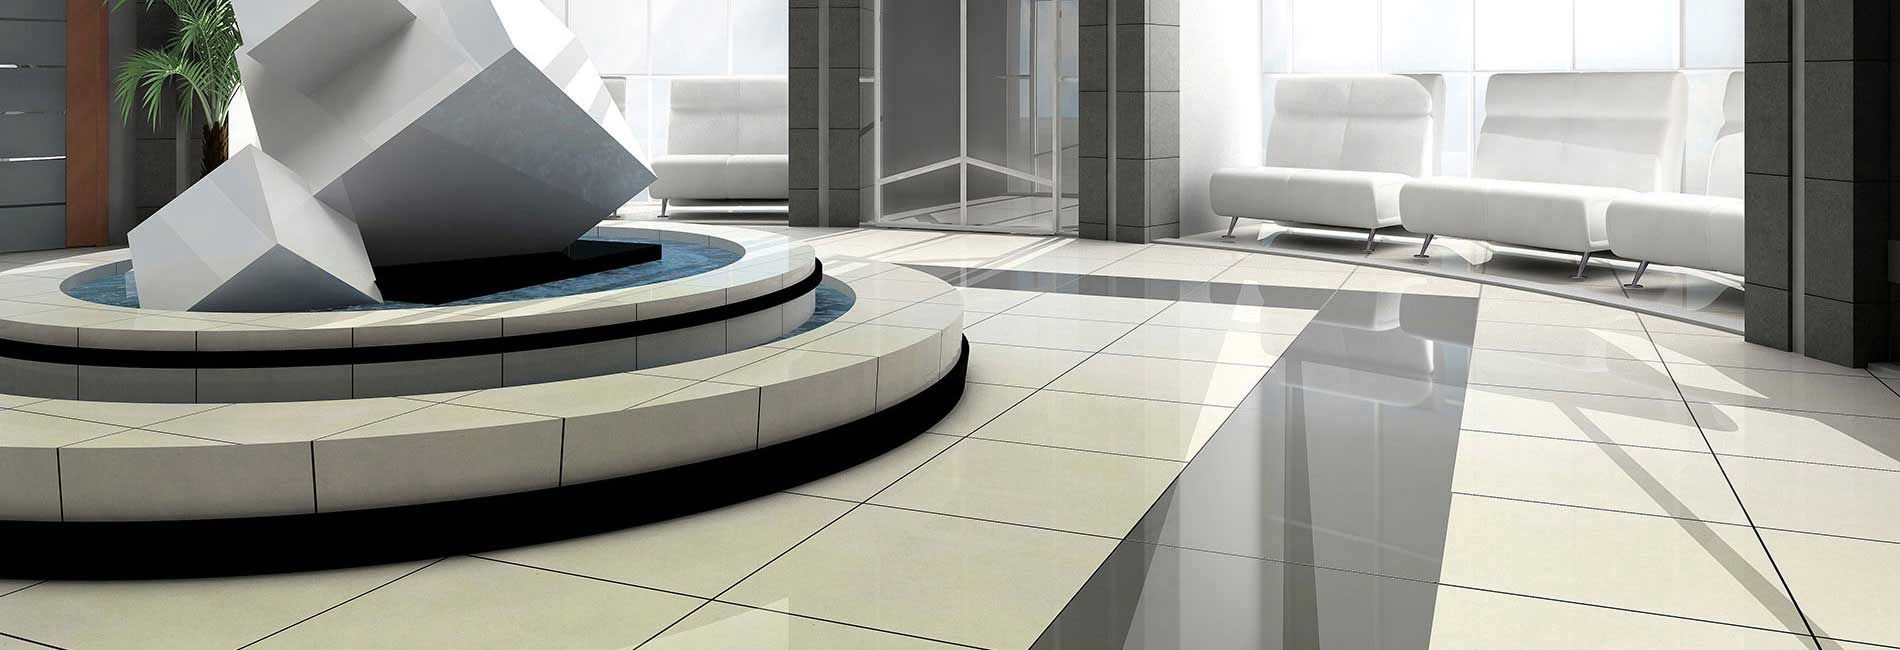 Beautifully Designed Corporate Office Entrance Hall With Vitrified